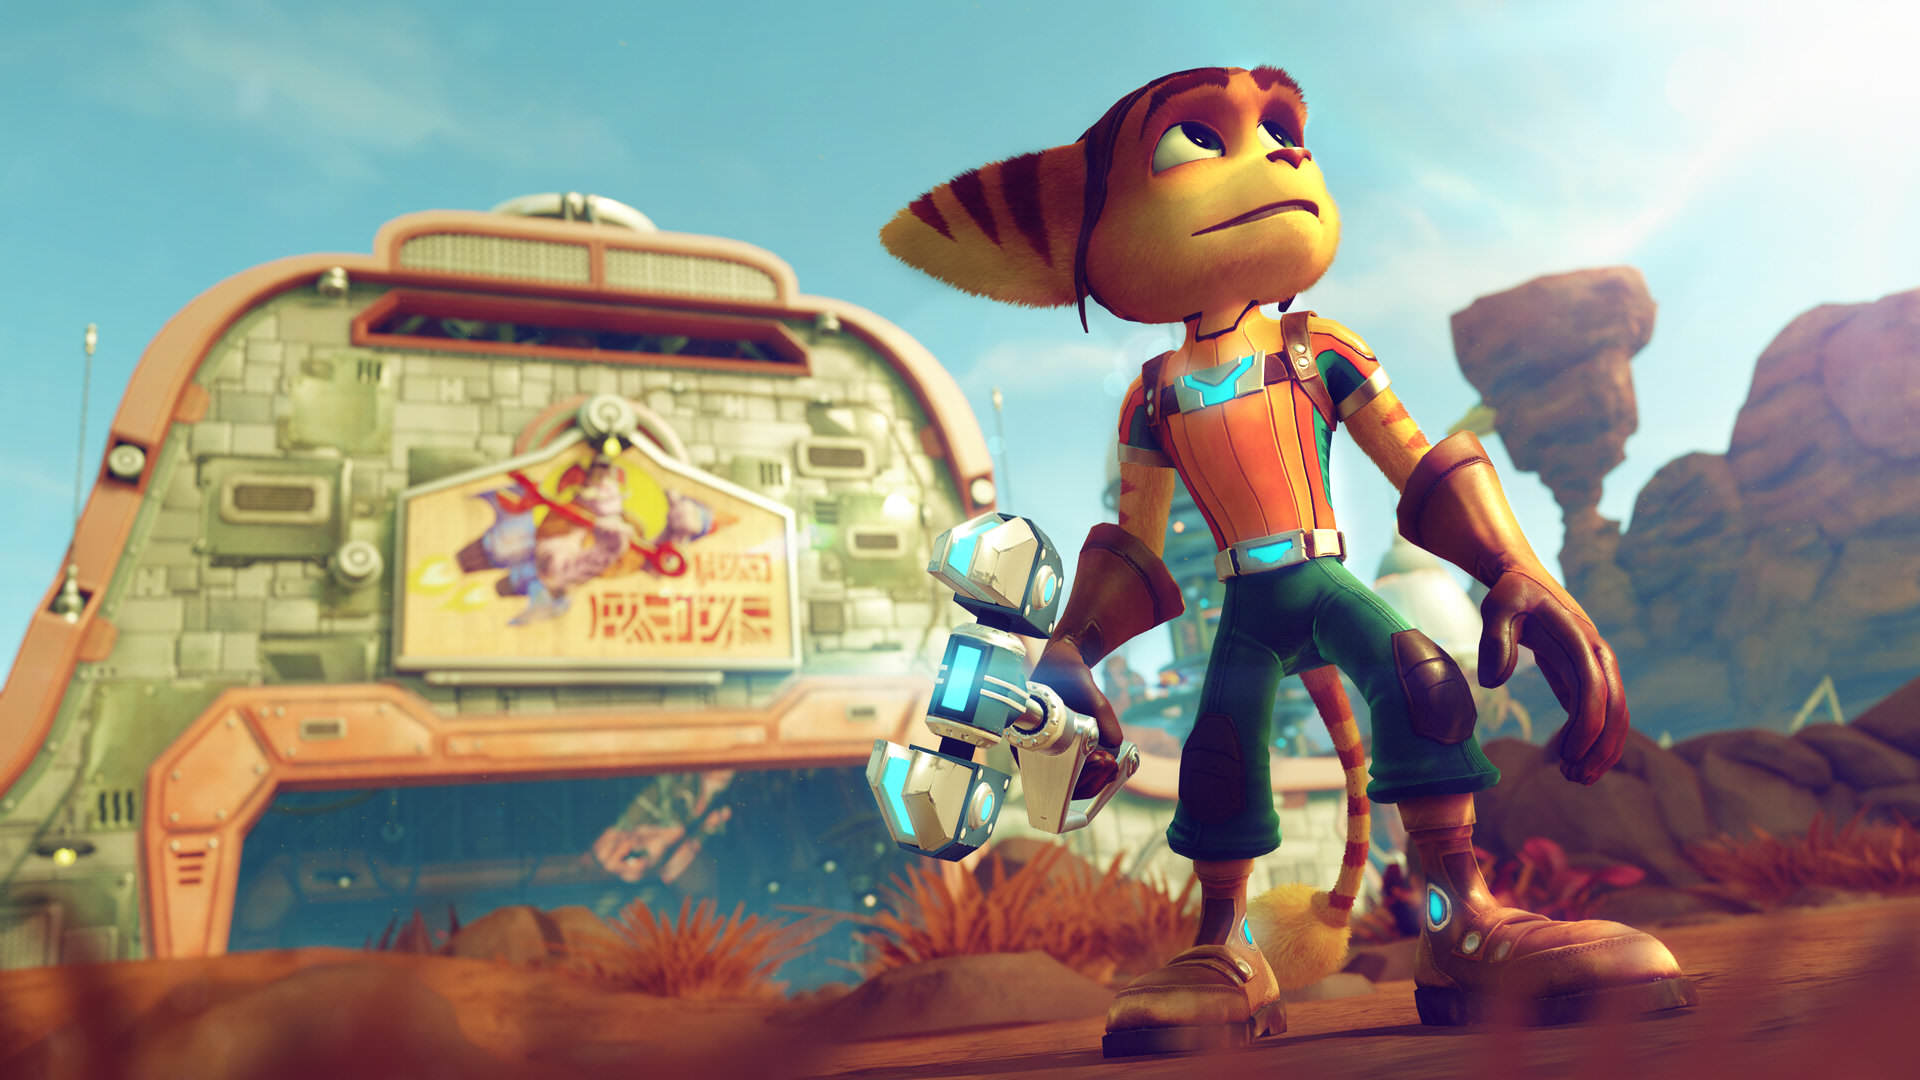 ratchet and clank screenshot 02 psv us 10jun15 YouTube Reveal Top 10 Trending Games For April 2016